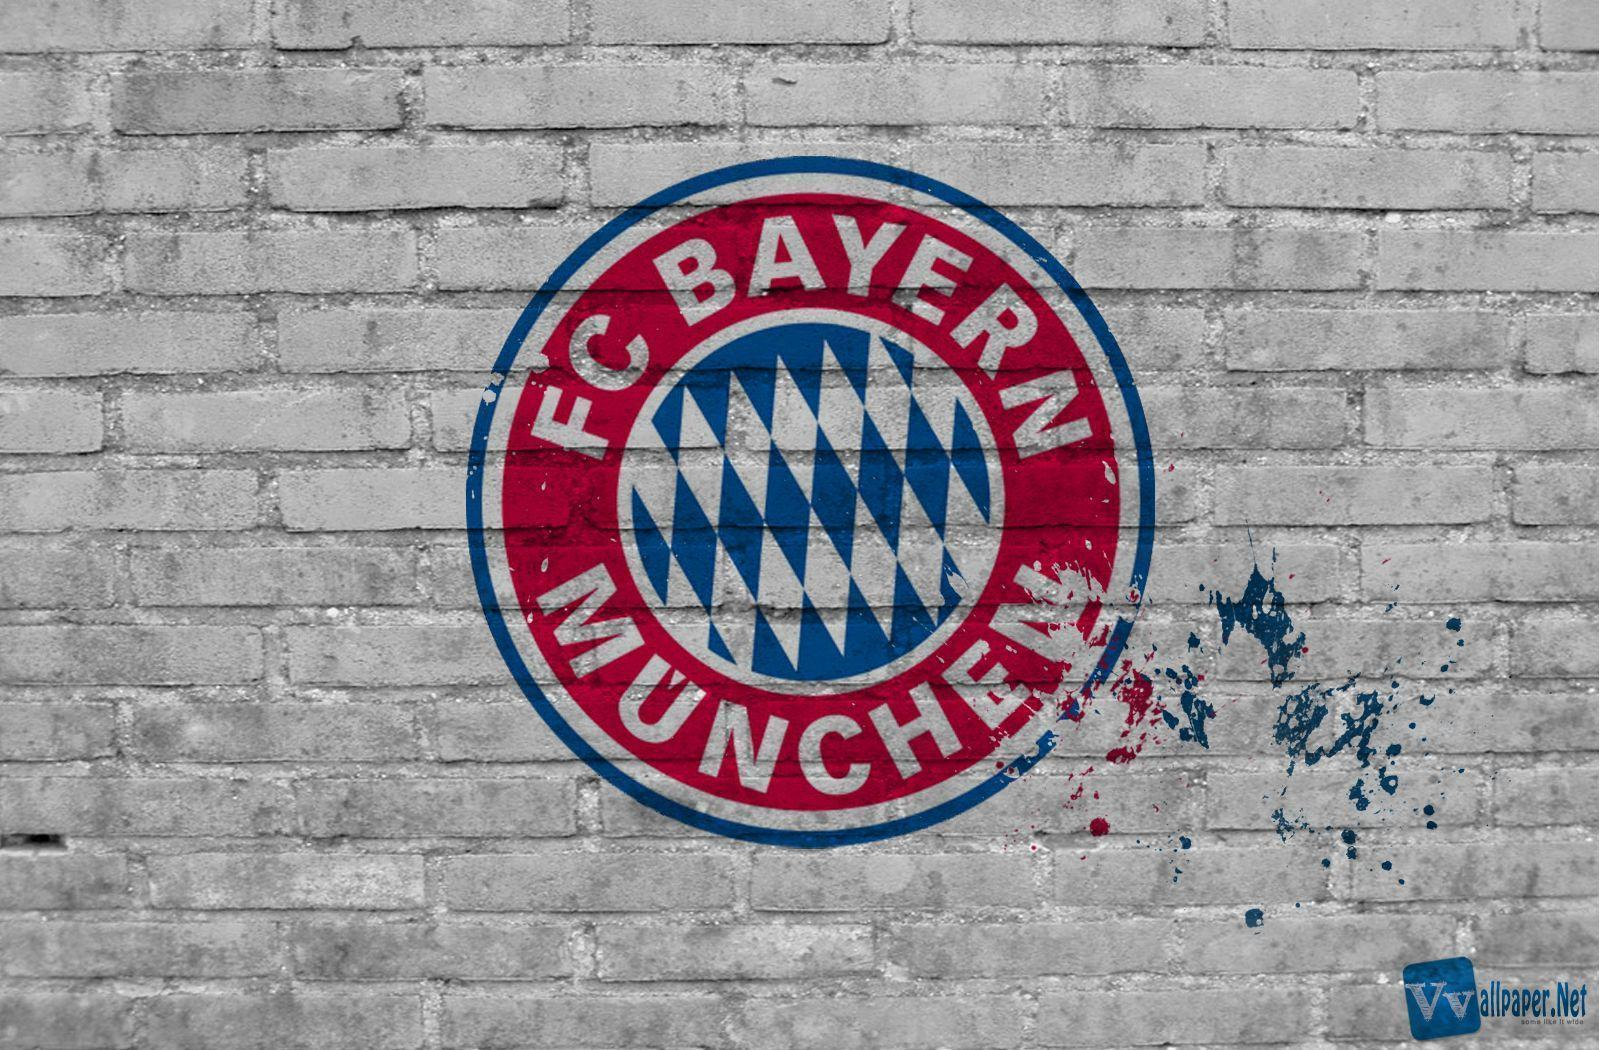 Fc Bayern Munich Hd Wallpapers - WallpaperSafari